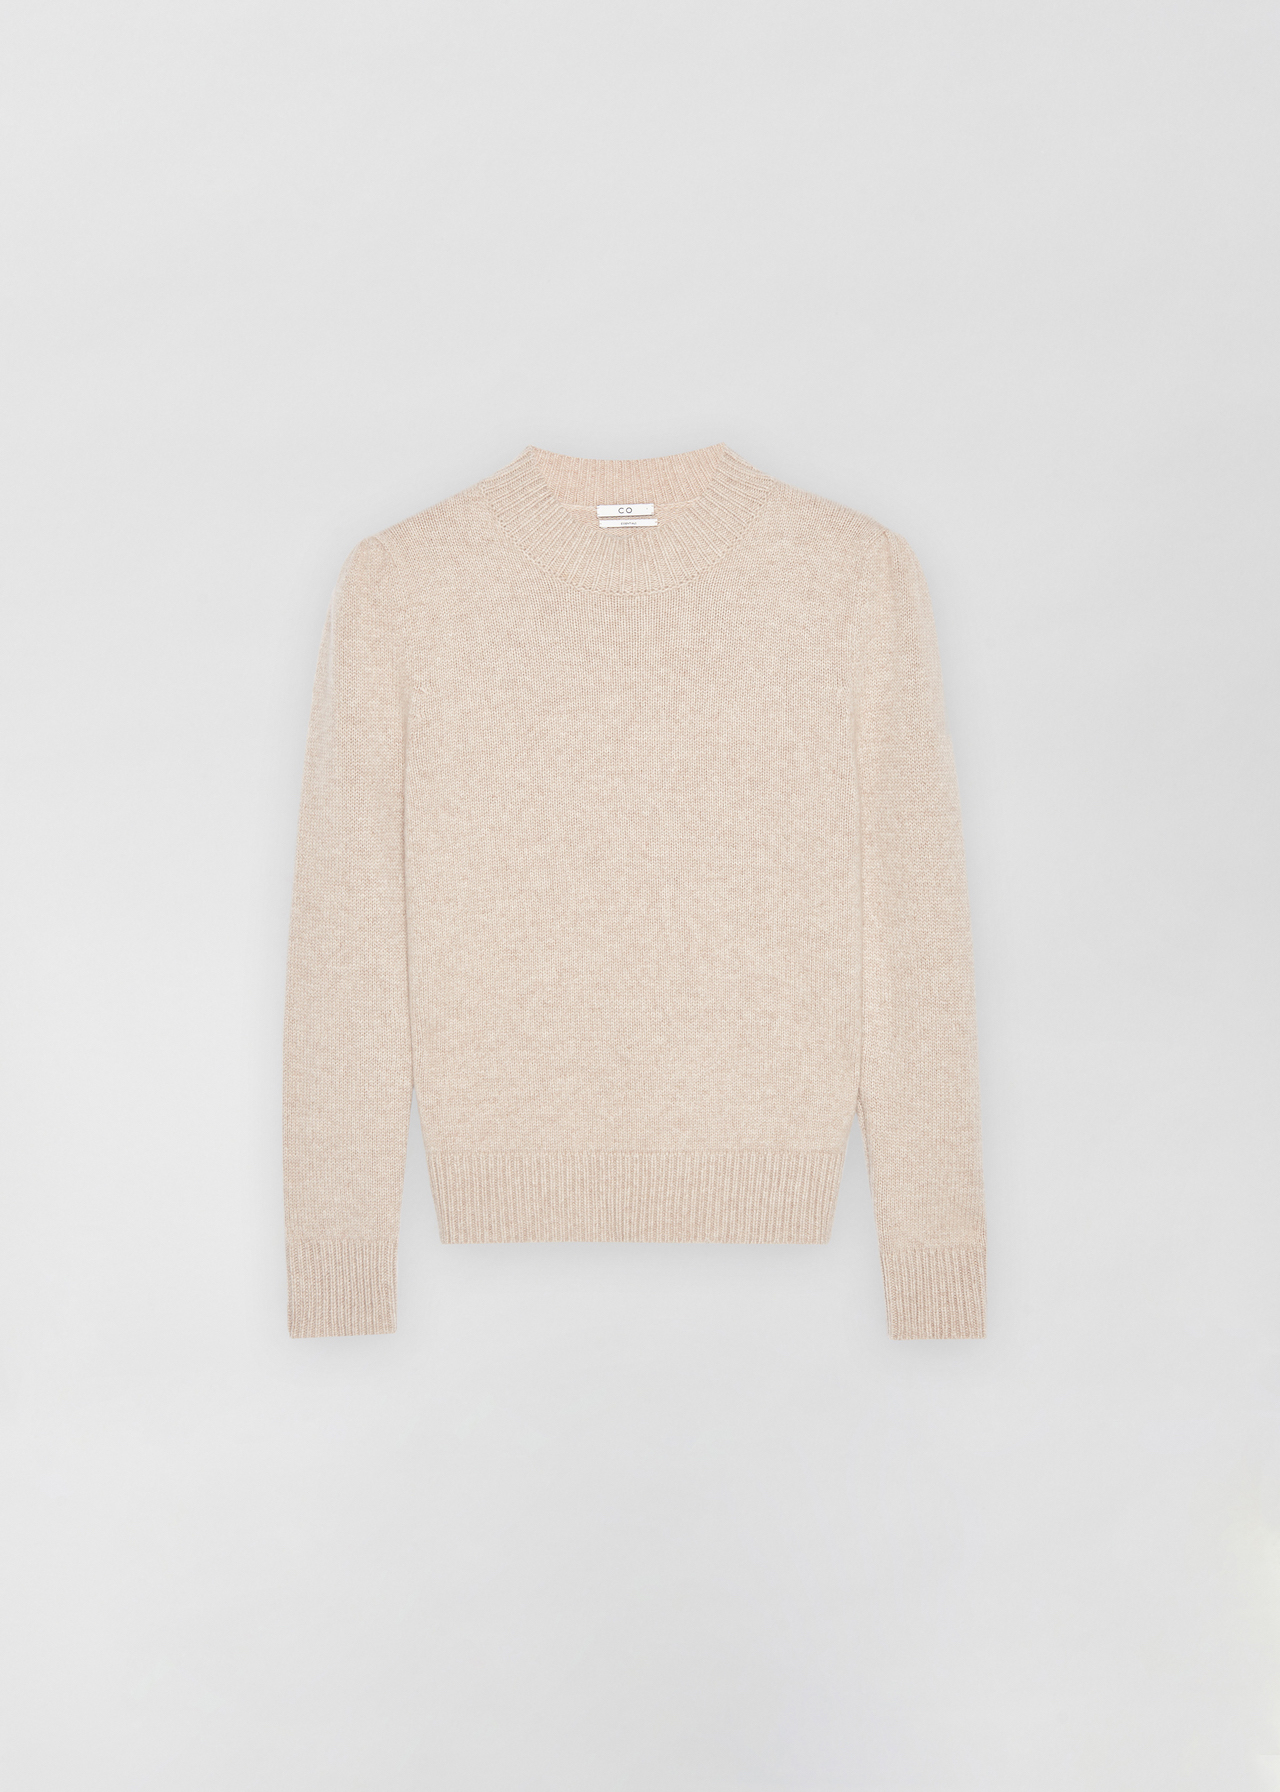 Ruched Cashmere Crew Neck Sweater - Light Grey in Sand Melange by Co Collections